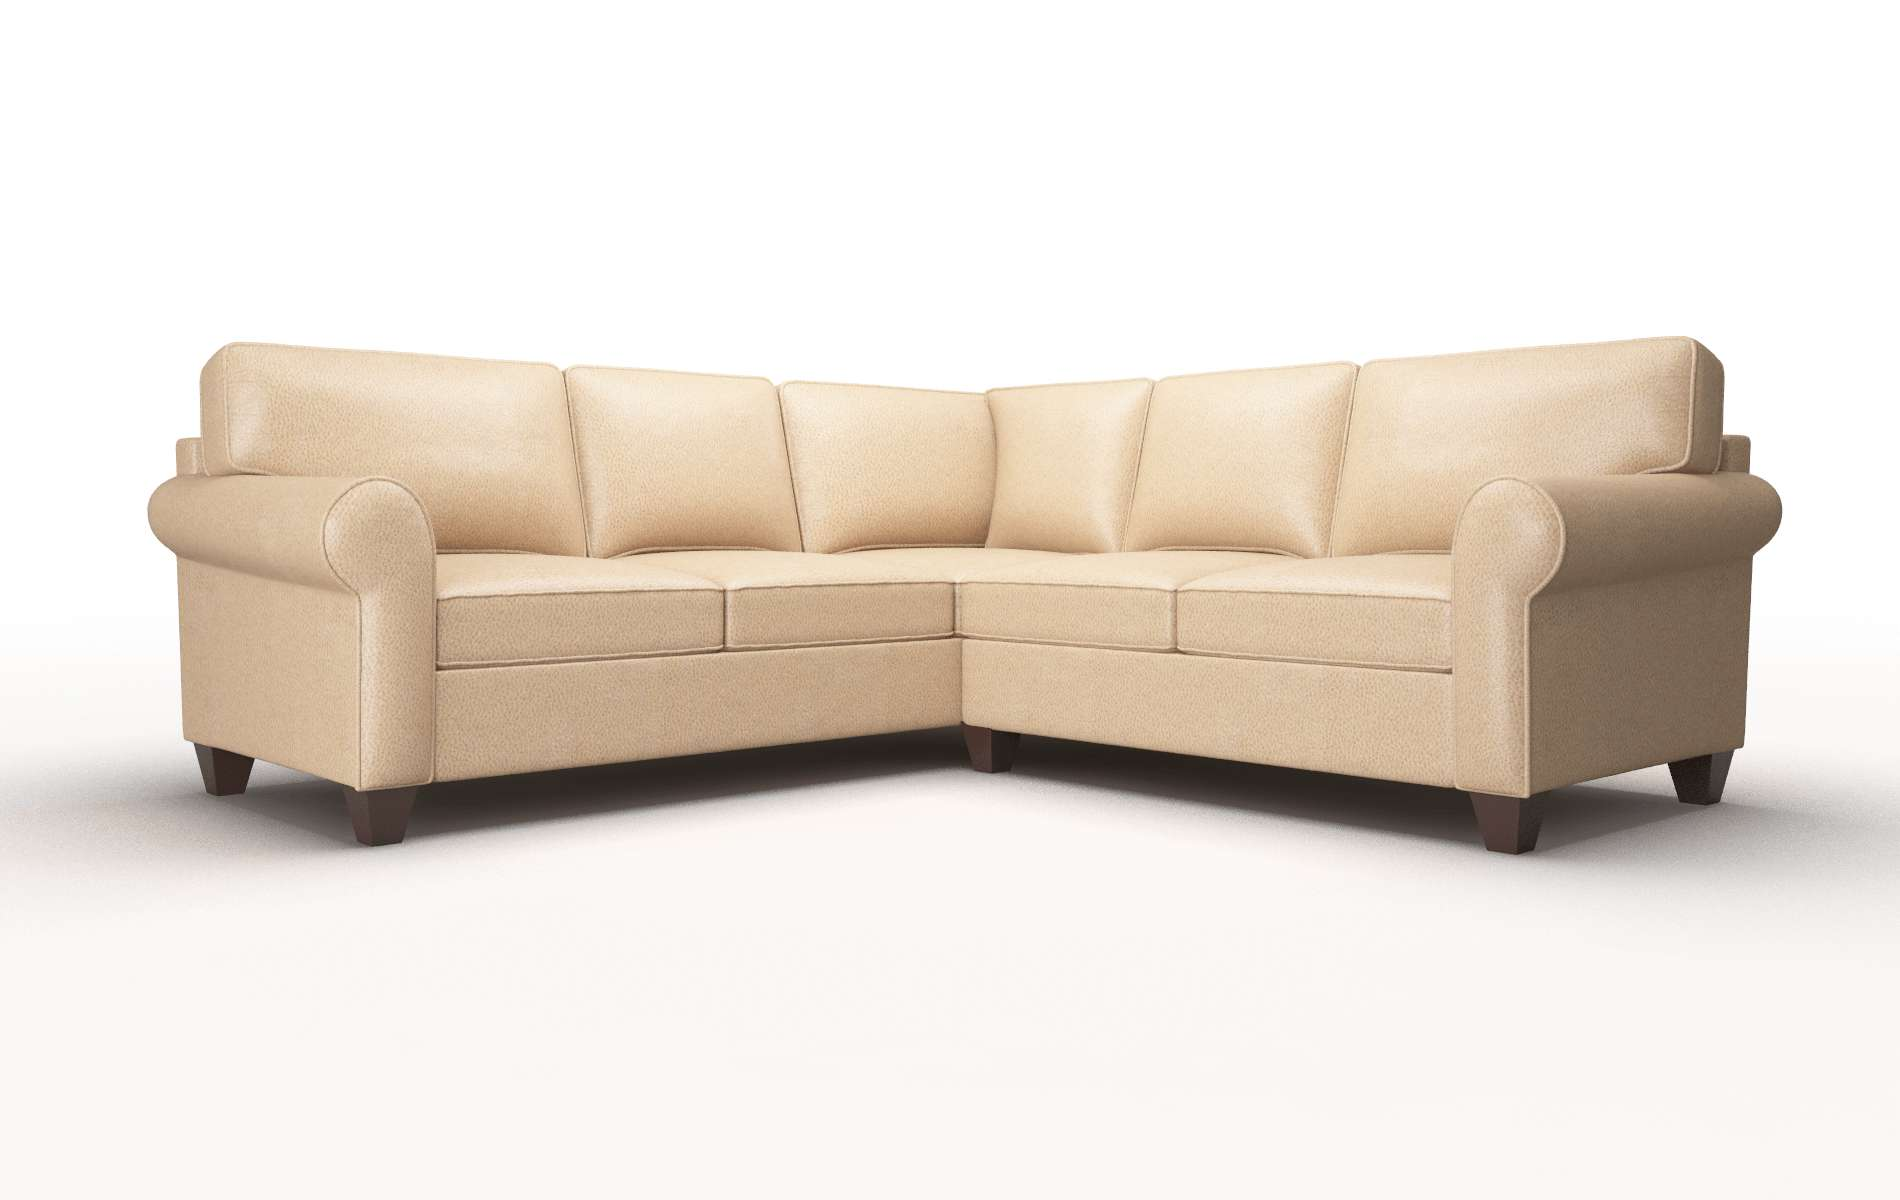 Augusta Ford Dune Sectional espresso legs 1